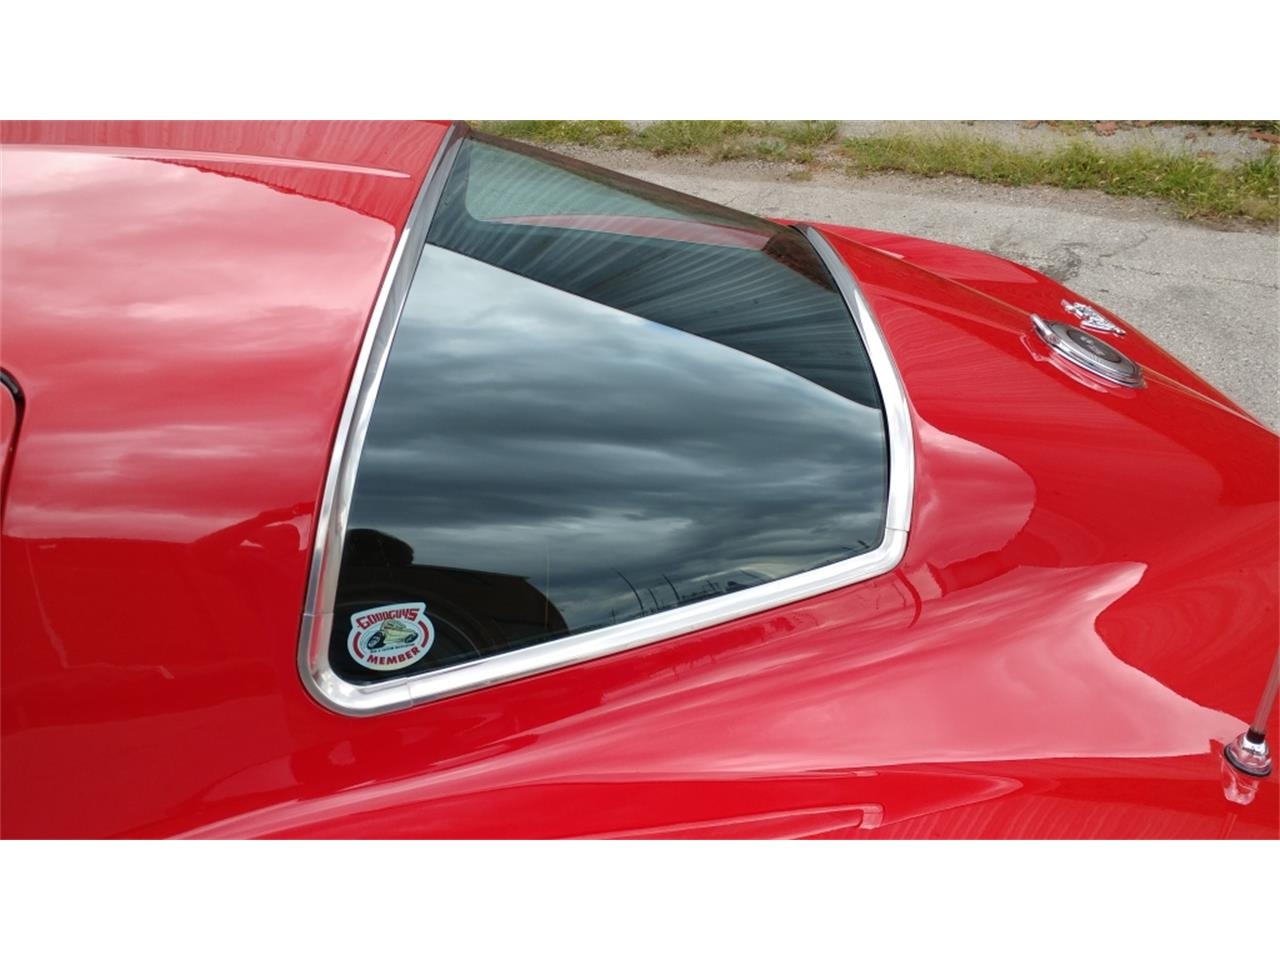 Large Picture of Classic 1966 Corvette - $59,995.00 Offered by Vintage Vettes, LLC - MO25